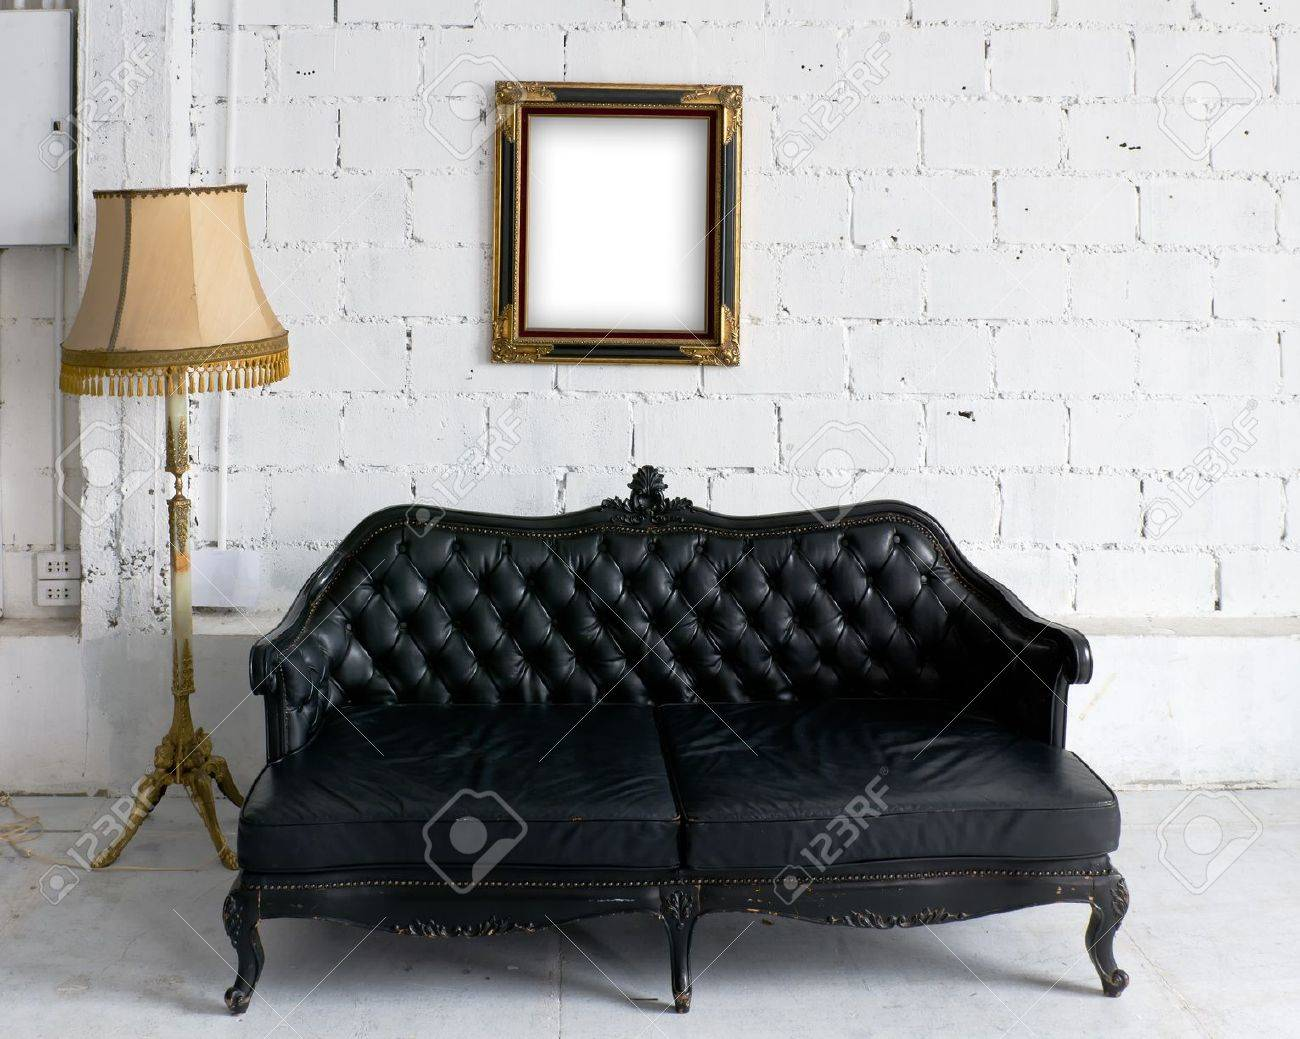 old black leather sofa with lamp and wood picture frame on white wall stock photo black leather sofa